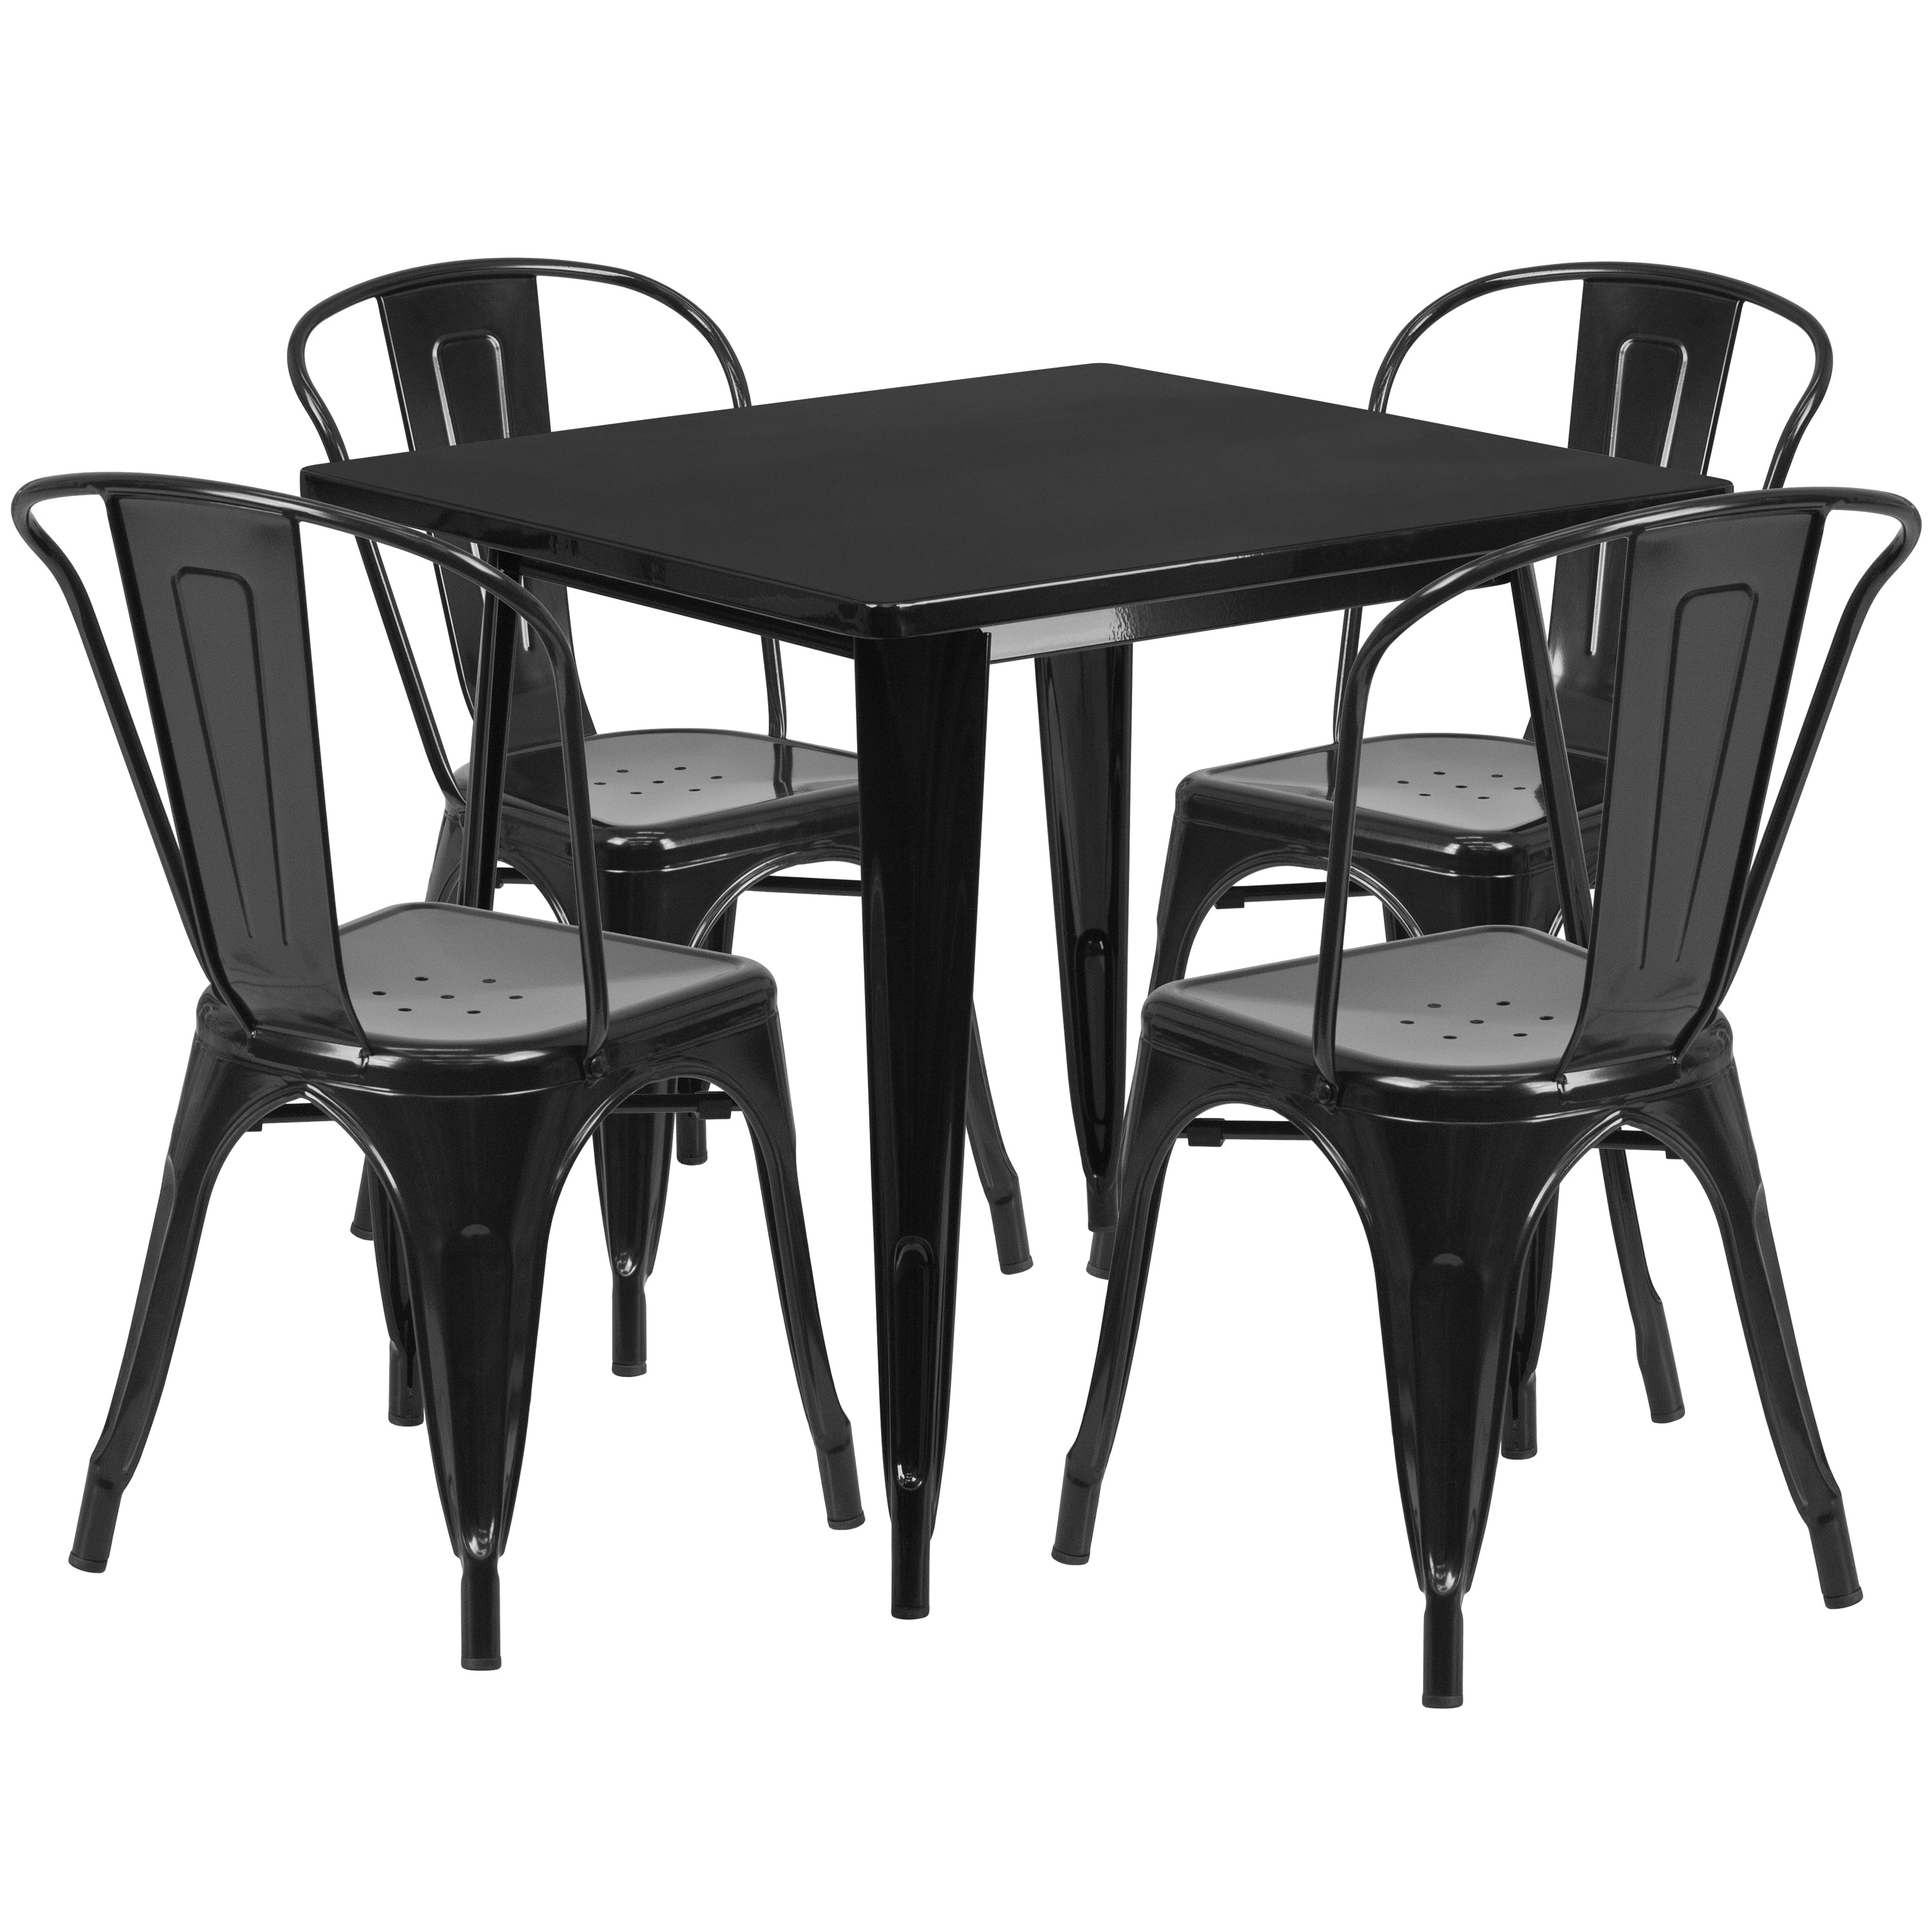 31 5 square metal indoor outdoor table set with 4 stack chairs qolture